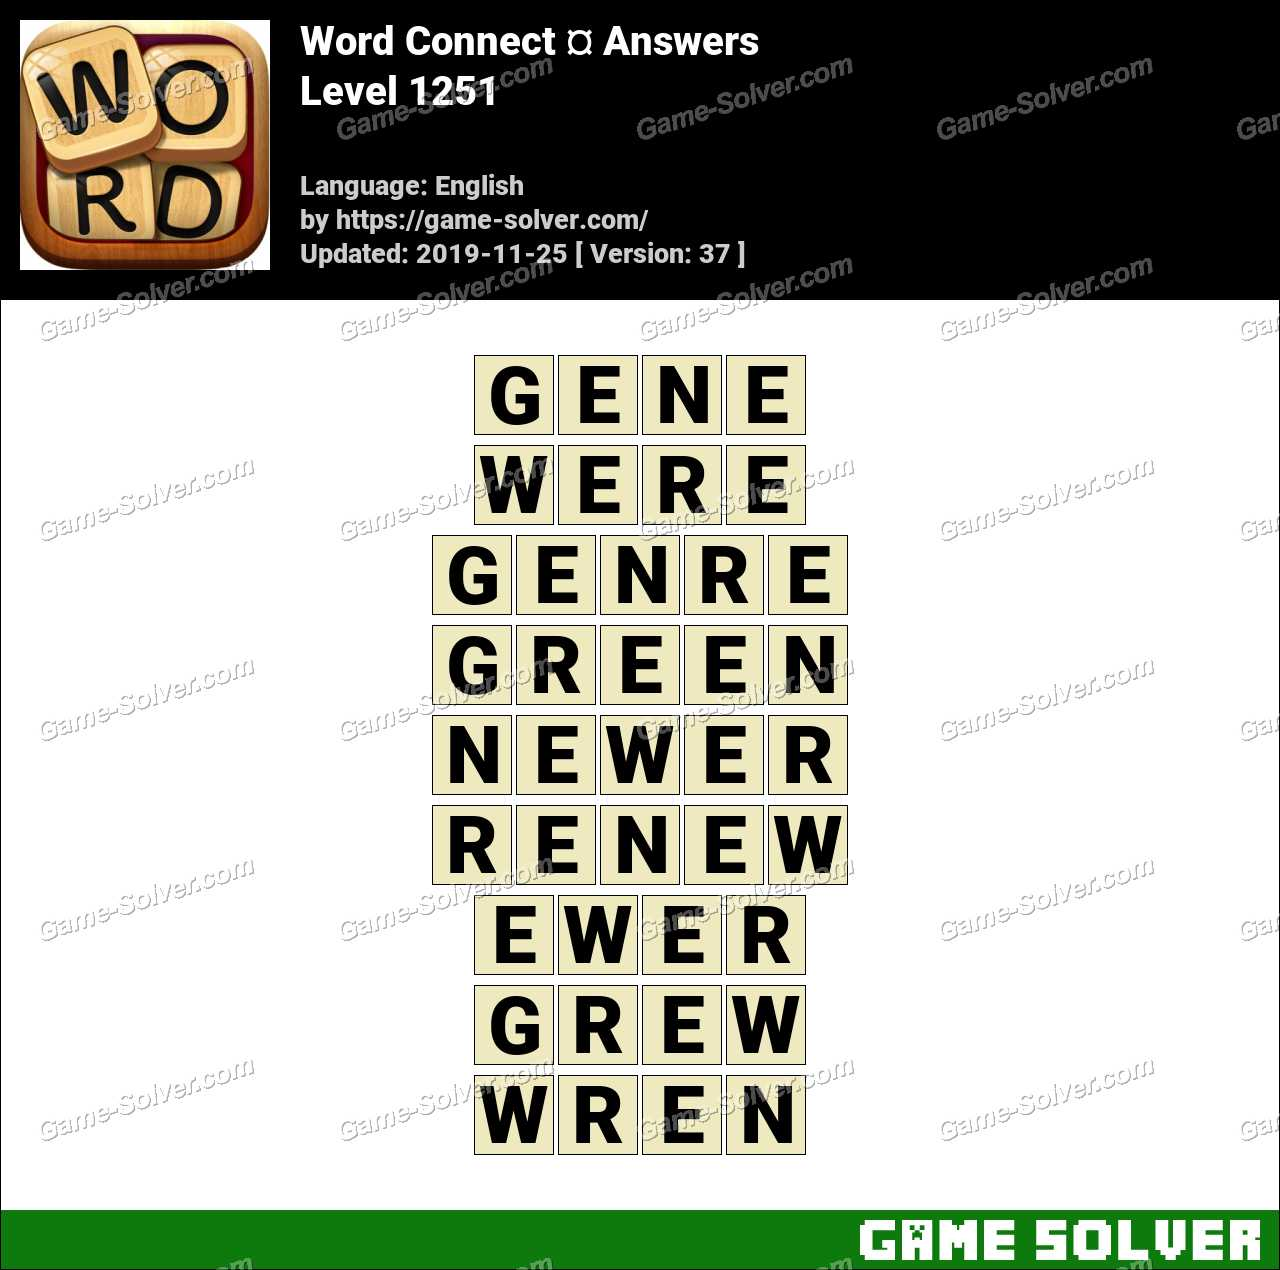 Word Connect Level 1251 Answers